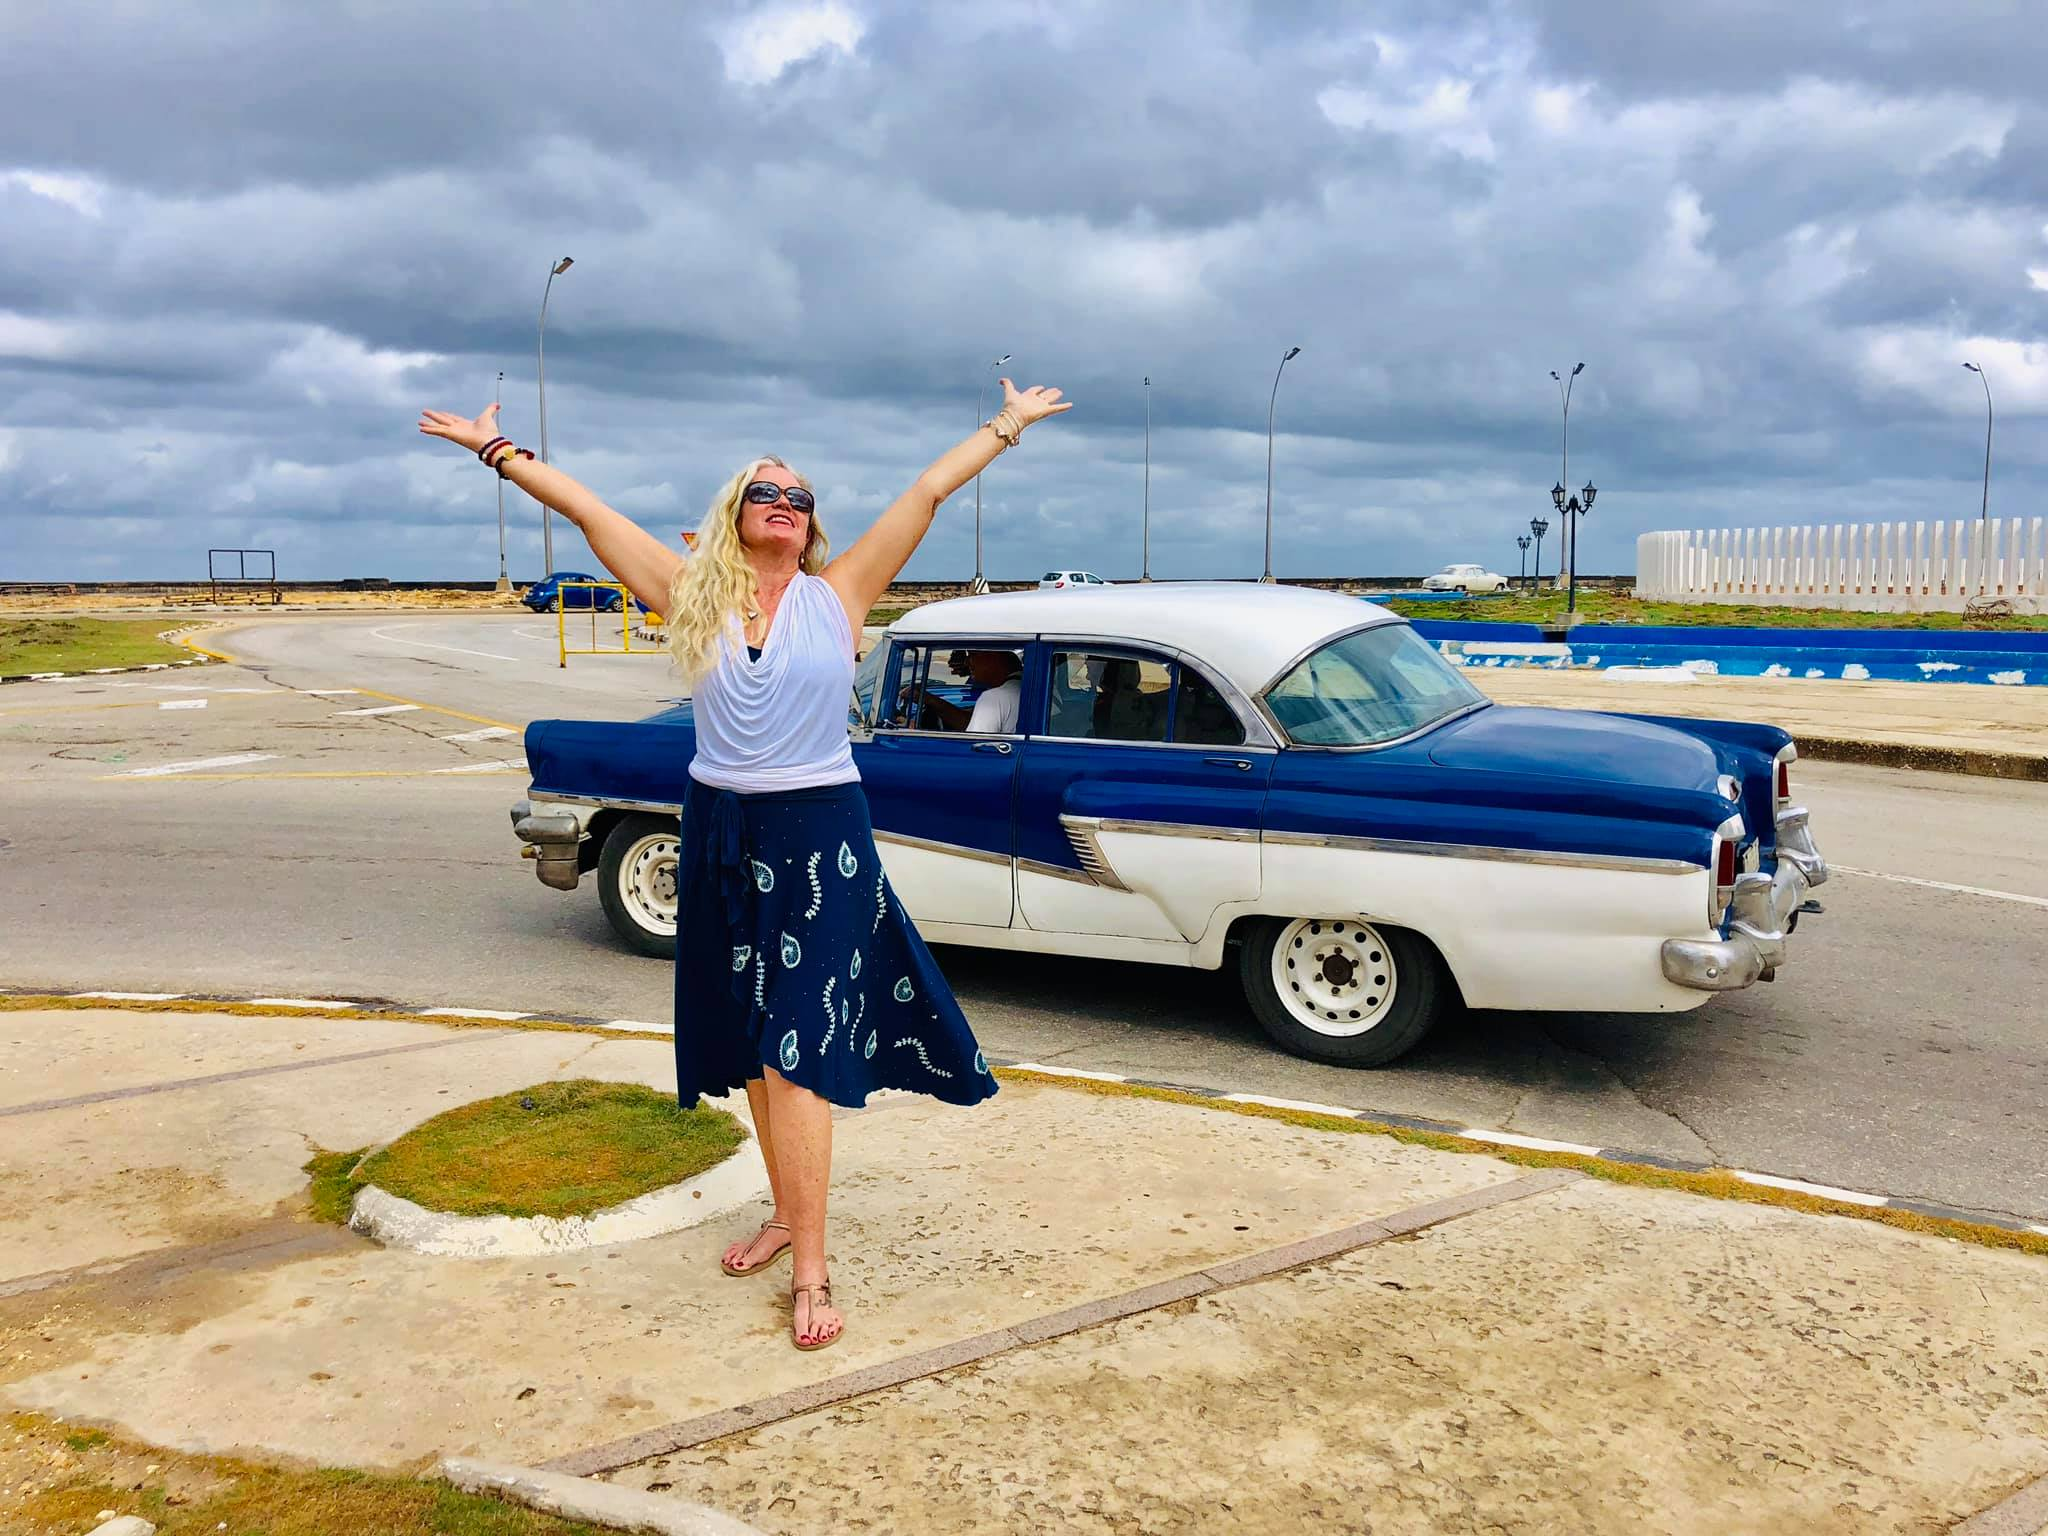 Rosa during the Cuba 2019 trip